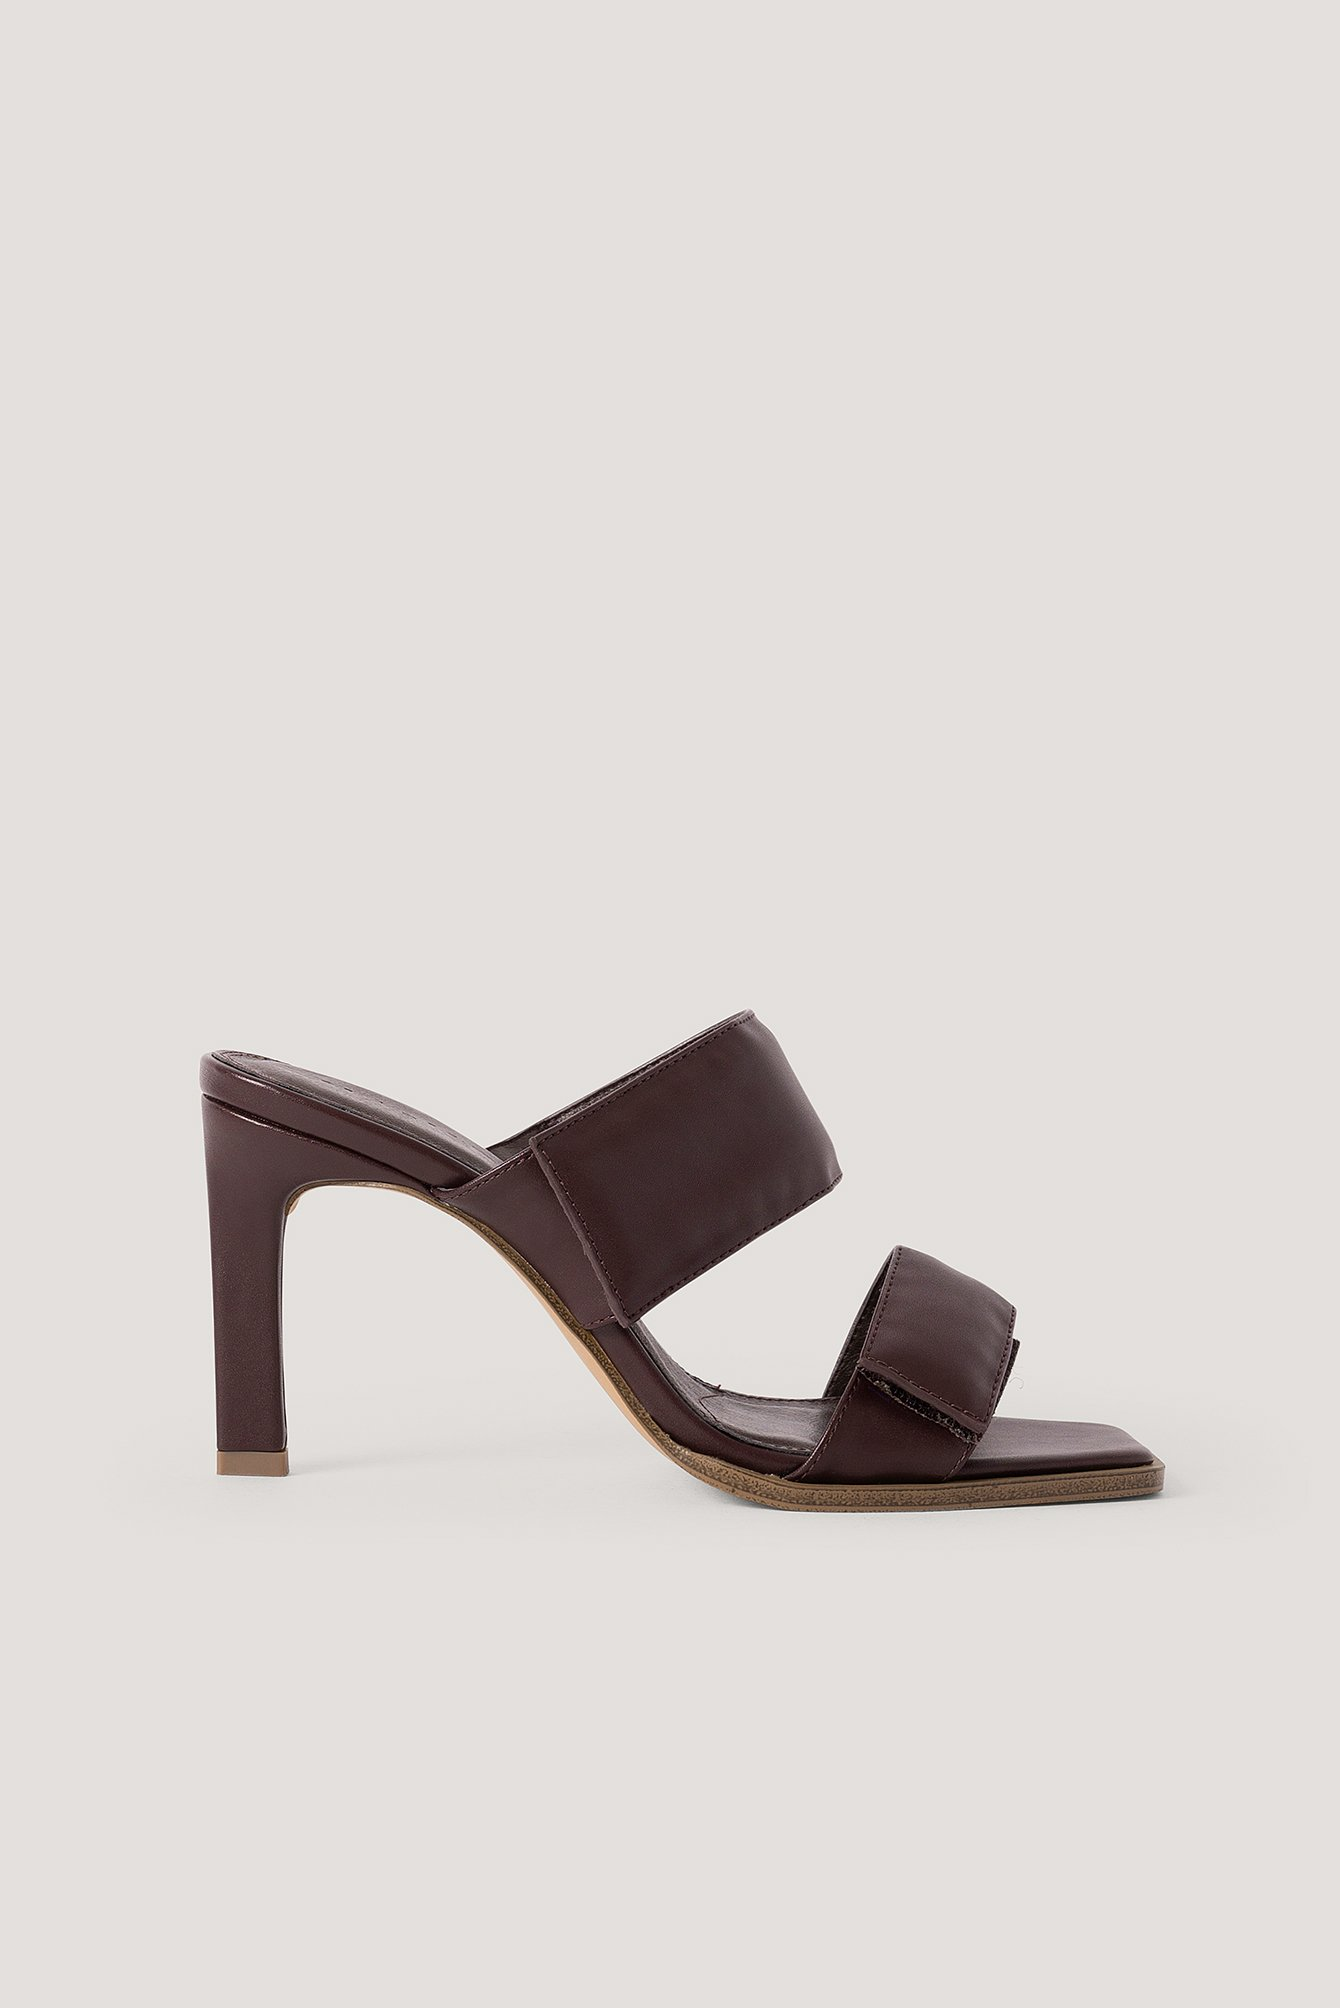 NA-KD Shoes Mules - Brown